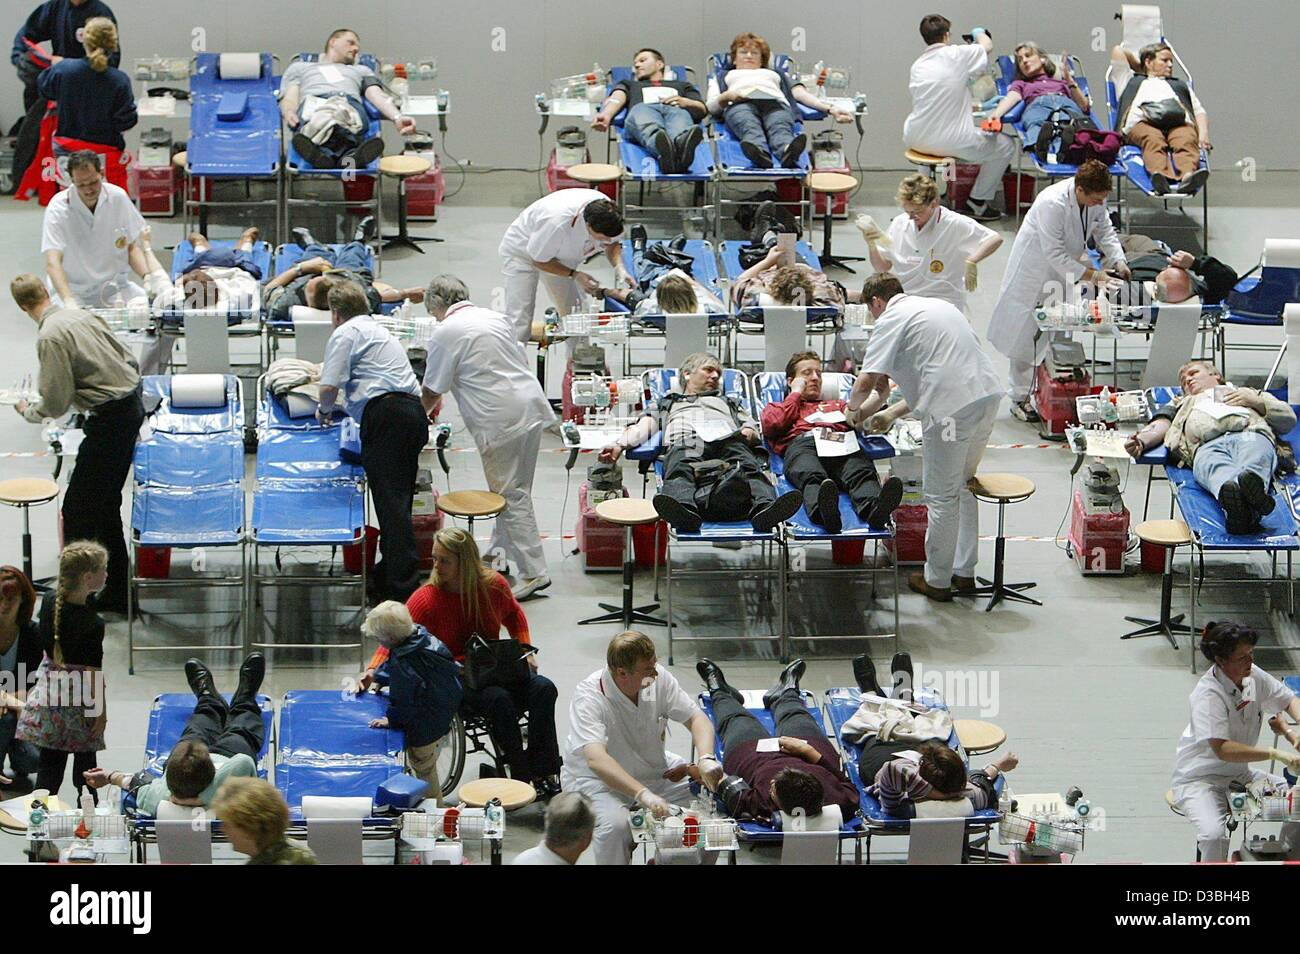 (dpa) - A group of volunteers relaxe on pallets while they donate blood in the Westfalenhalle in Dortmund, Germany, - Stock Image